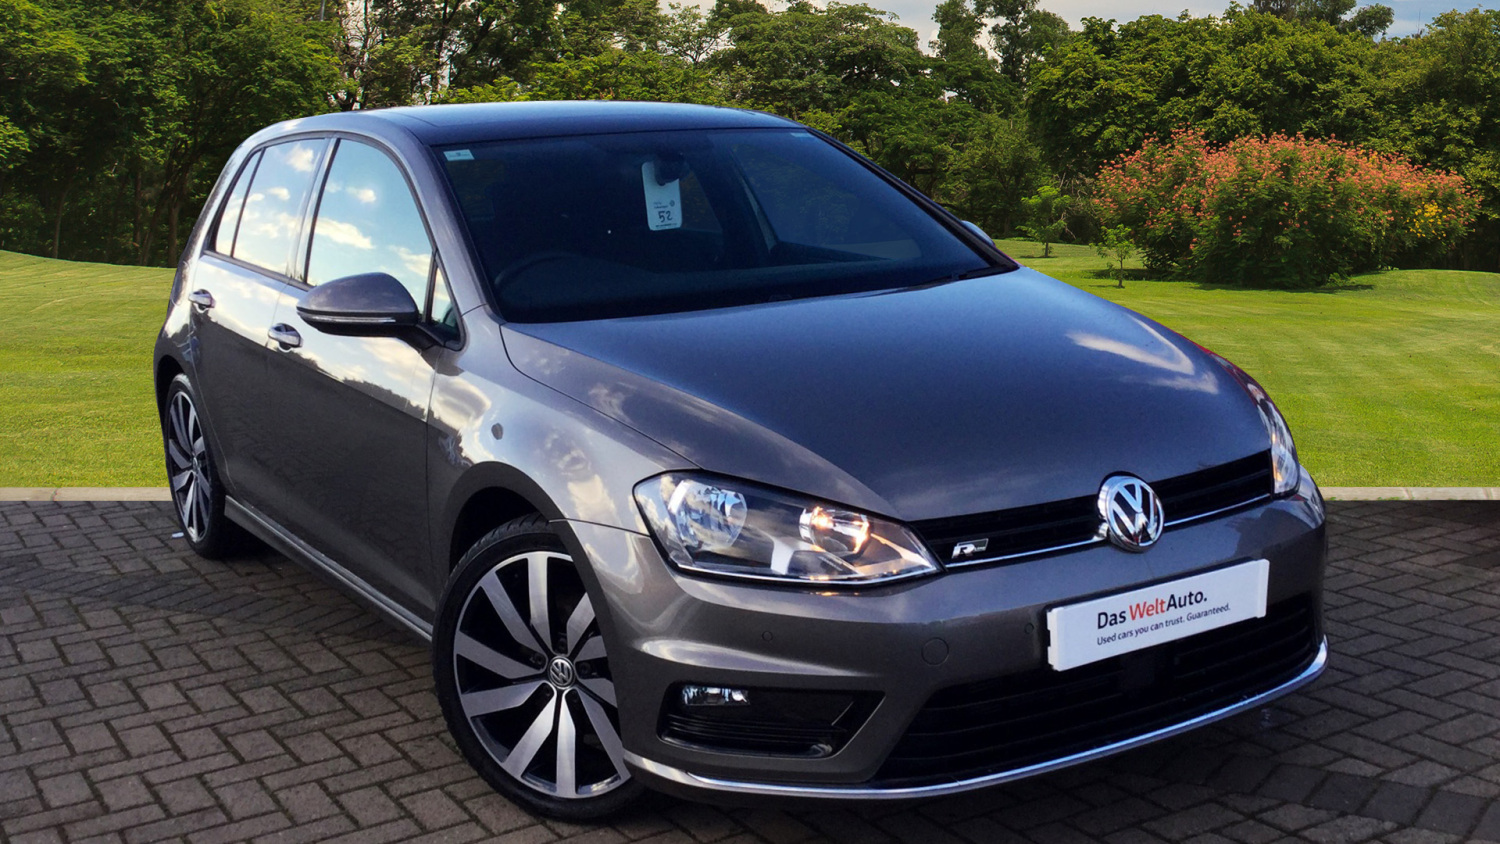 used volkswagen golf 1 4 tsi 150 r line edition 5dr dsg petrol hatchback for sale vertu honda. Black Bedroom Furniture Sets. Home Design Ideas